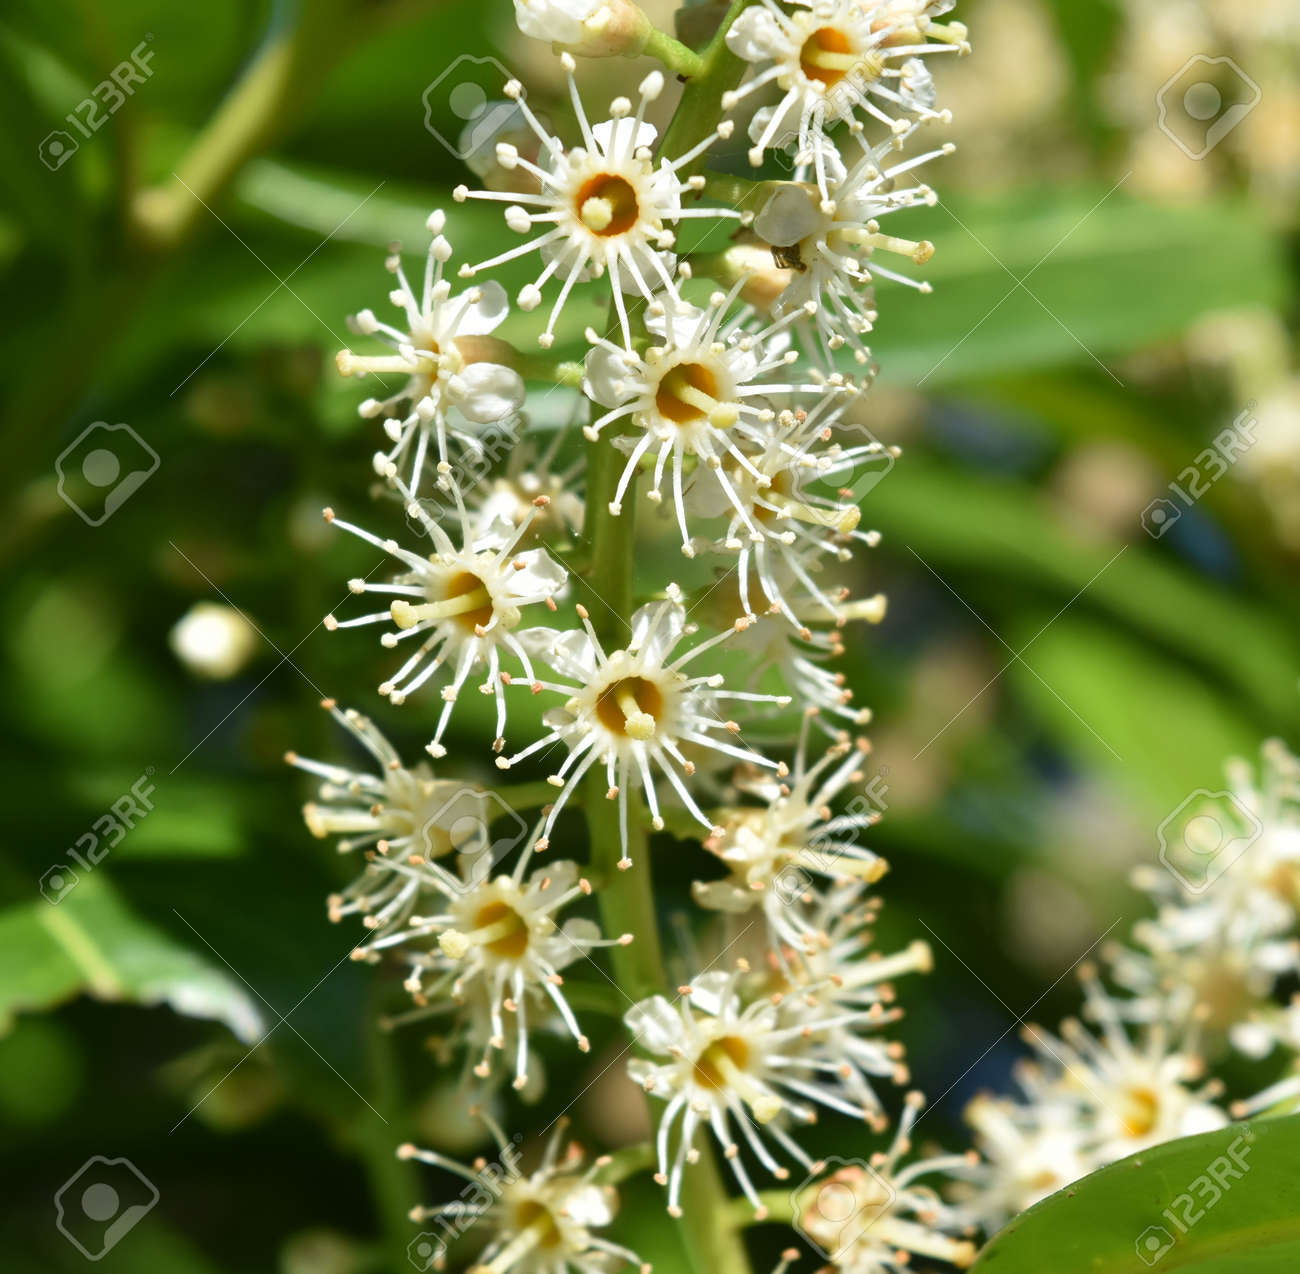 Close up of blossom of cherry laurel (Prunus laurocerasus) showing detail of flower structure. Stock Photo - 85078187